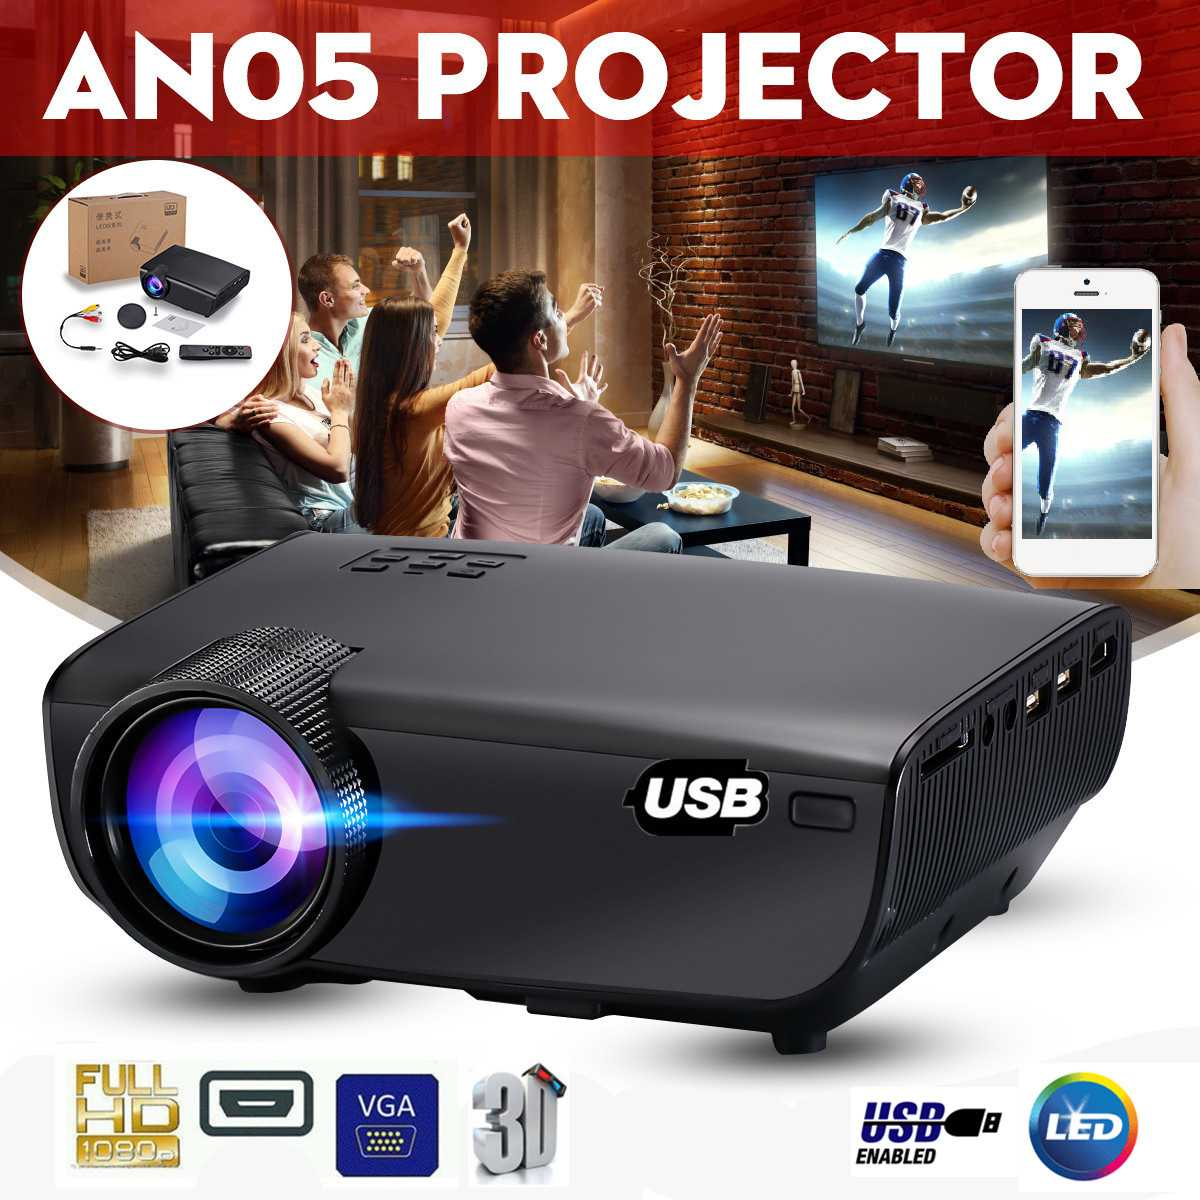 LEORY 2019 Newest <font><b>7000</b></font> <font><b>Lumens</b></font> LED 3D Projector USB Smartphone Display HDMI/USB/AV/SD/U Flash Disk Beamer Home Theater Projectors image